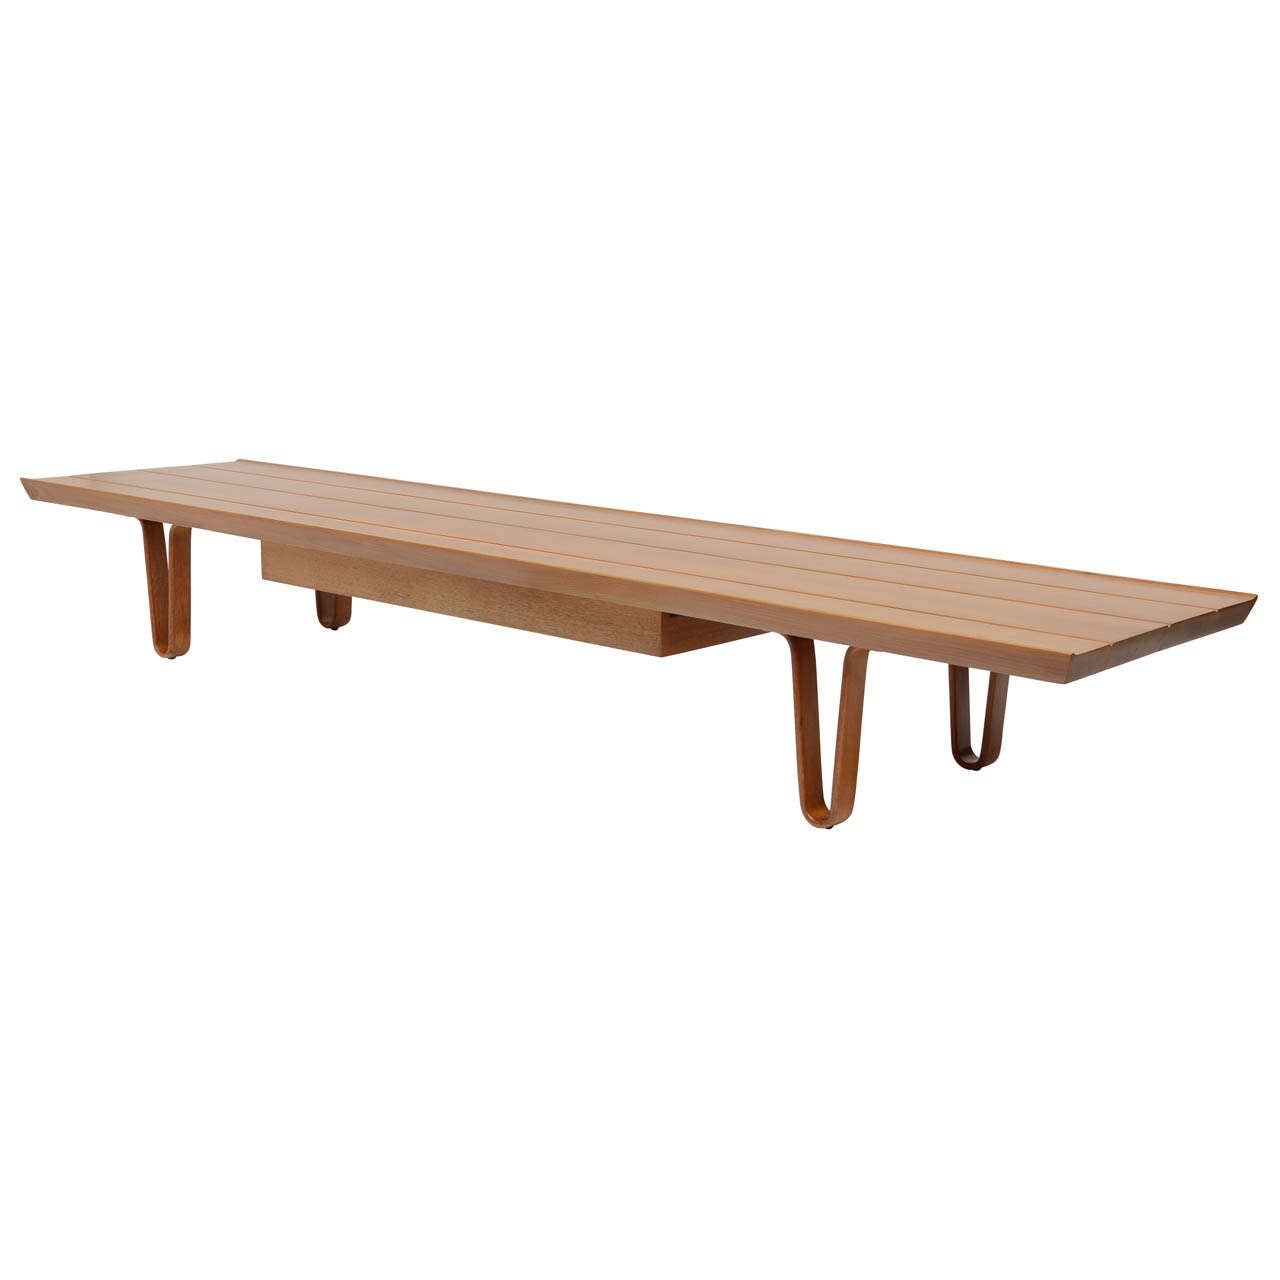 Edward Wormley Long John Bench Table At 1stdibs